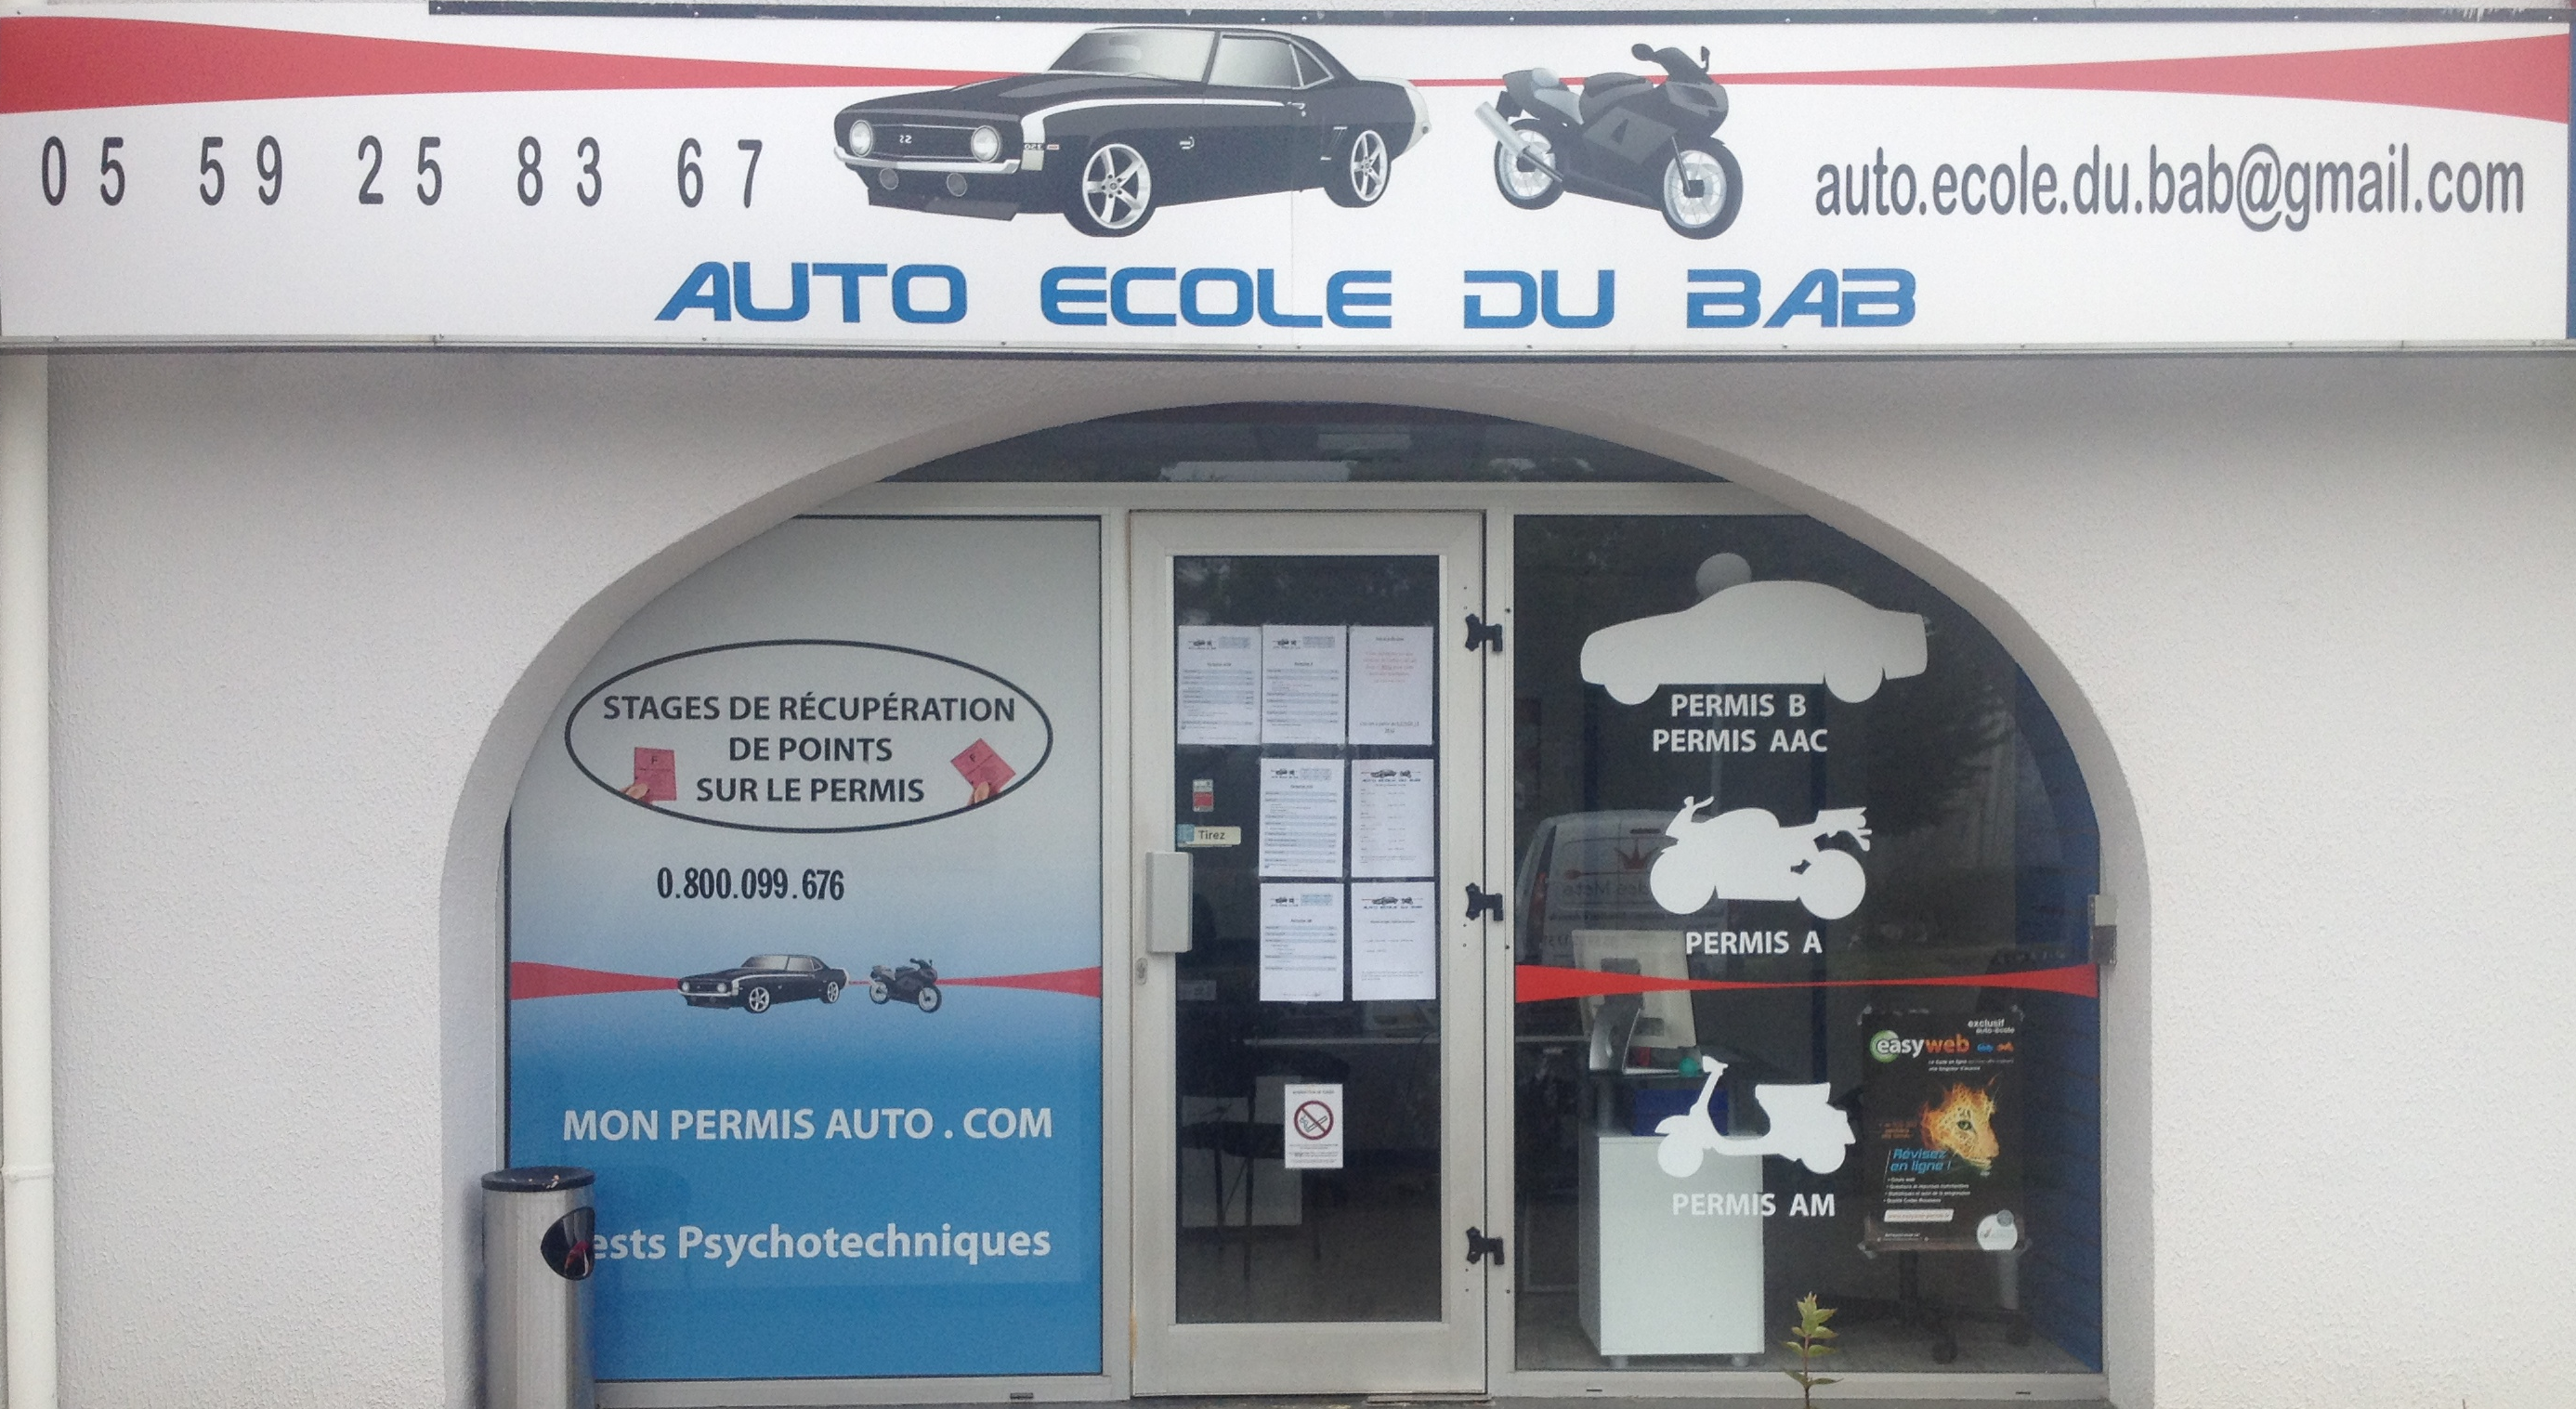 Auto ecole bab anglet - Carrefour bab2 horaires ...